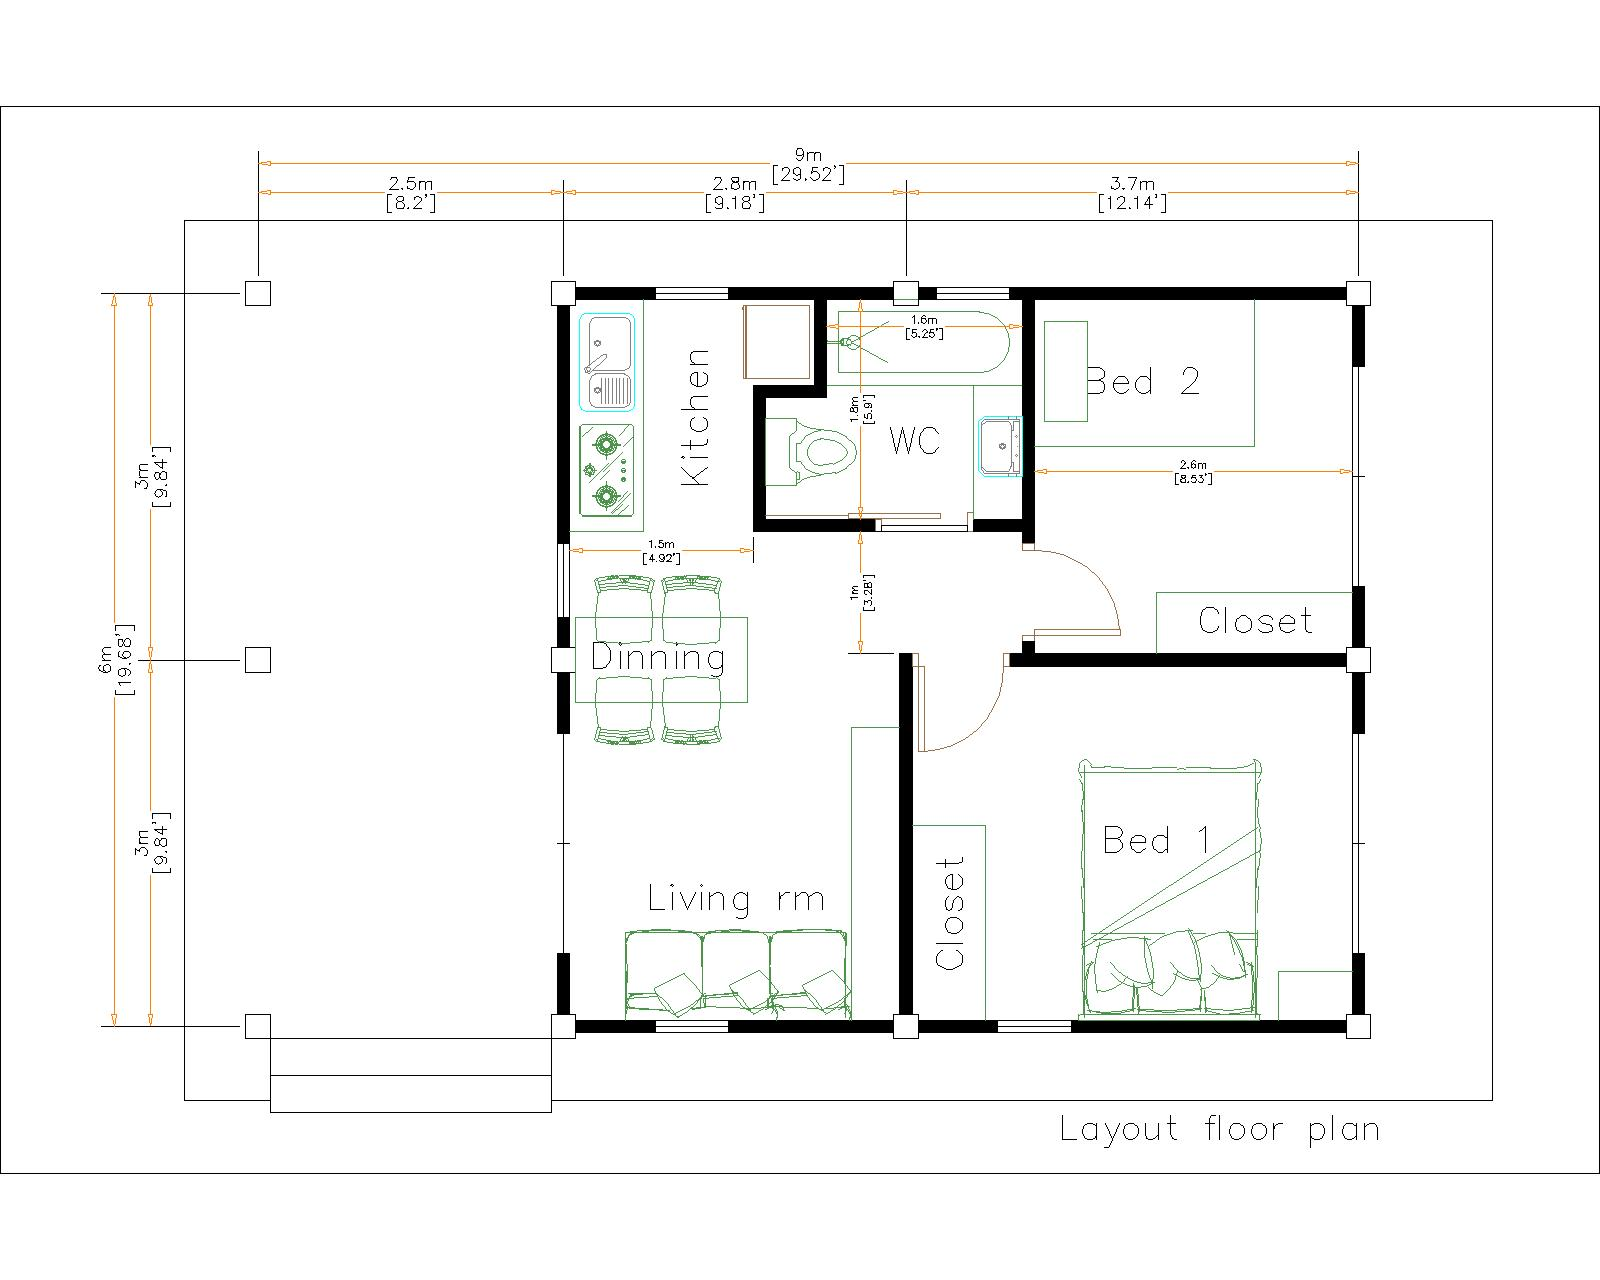 Small Home Floor Plans 9x6 Meter 30x20 Feet 2 Beds Layout floor plan